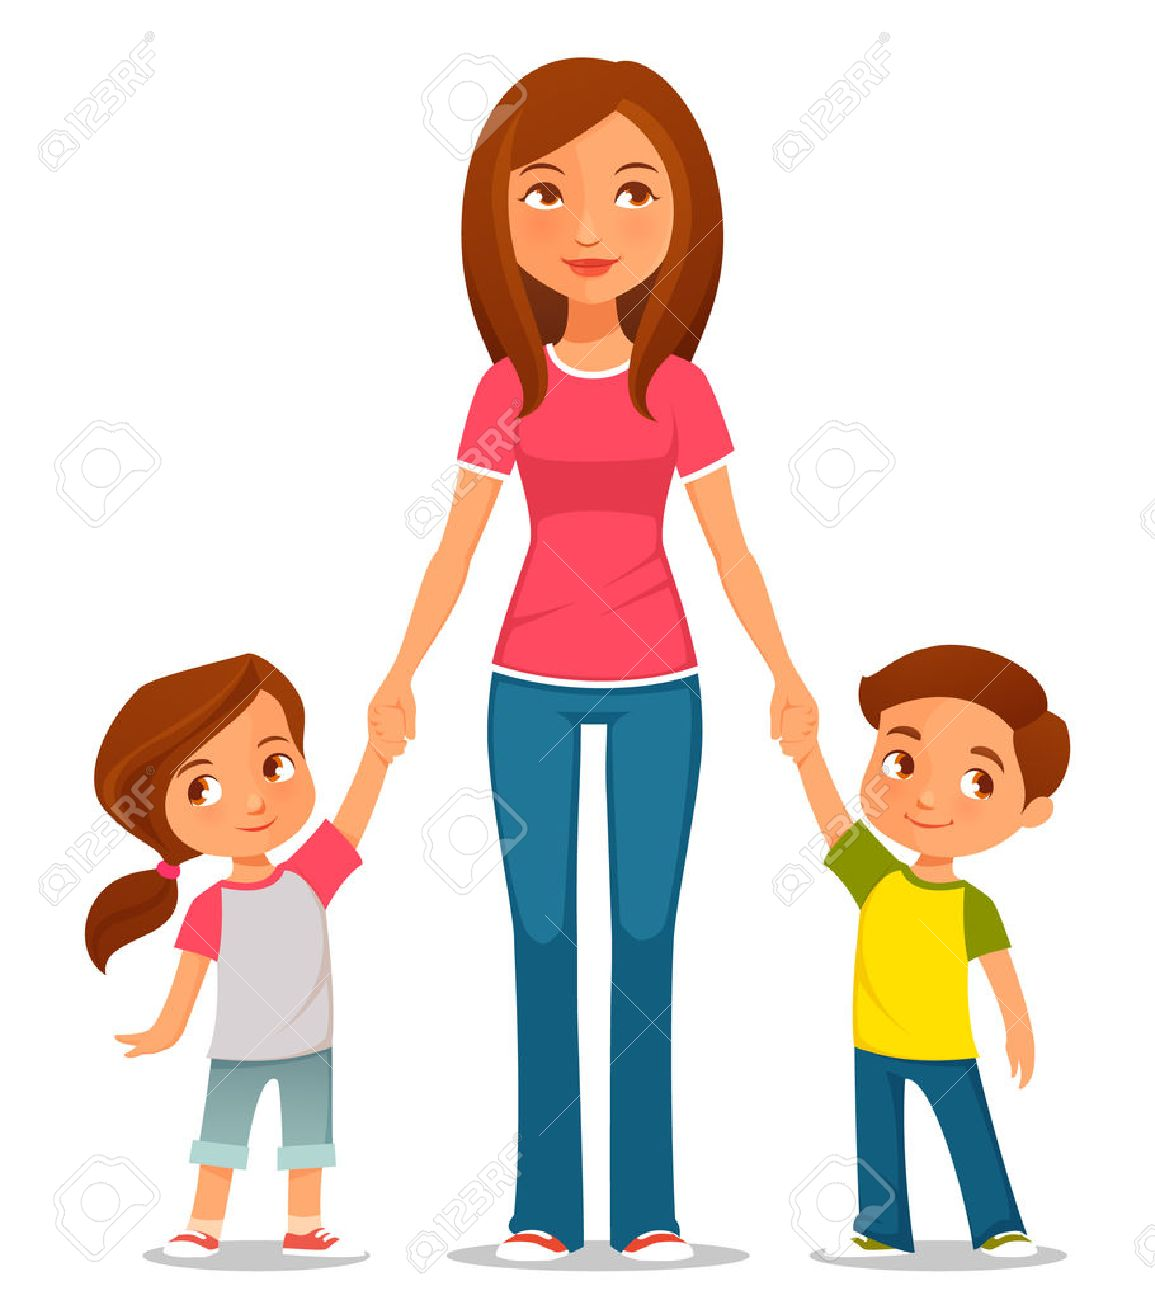 cute cartoon illustration of mother with two kids - 42150076